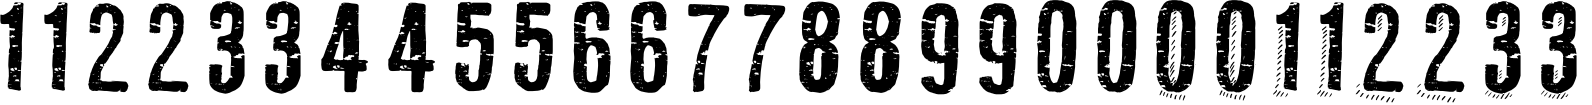 RUBA STYLE NUMBERS Font